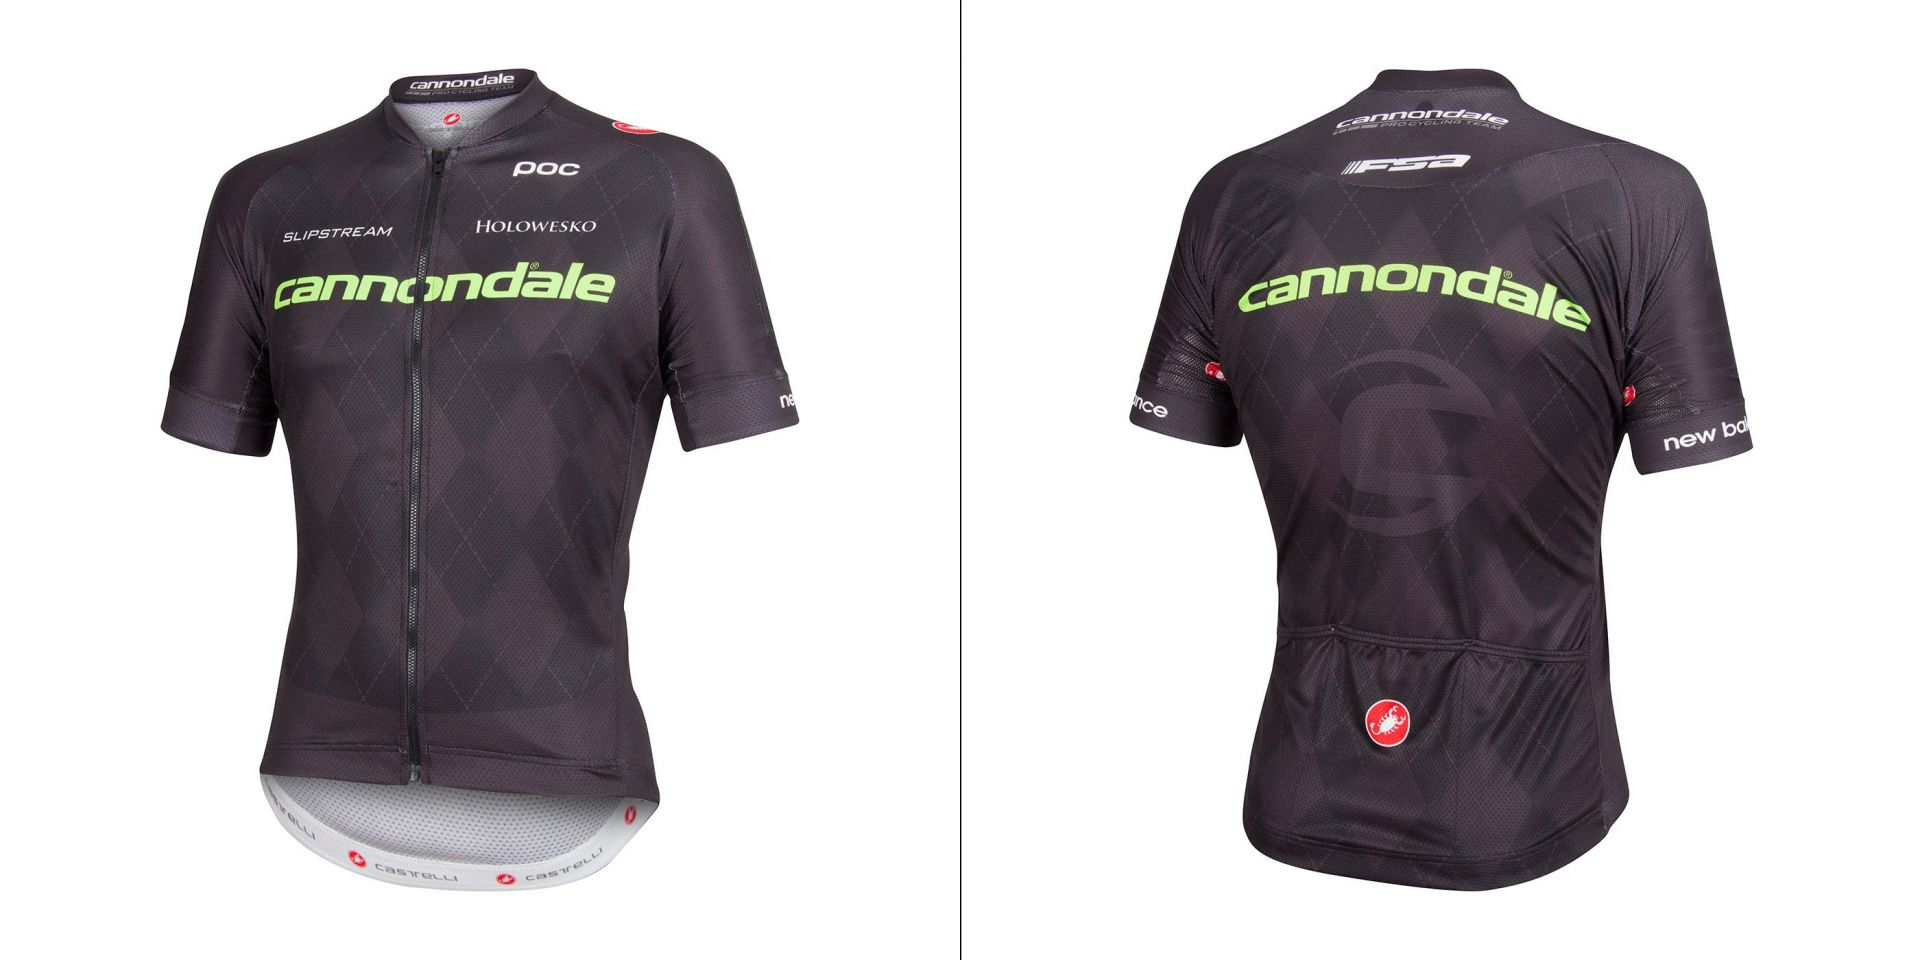 Maillot Cannondale Cannondale Pro Cycling Team by Castelli Noir Limited - S